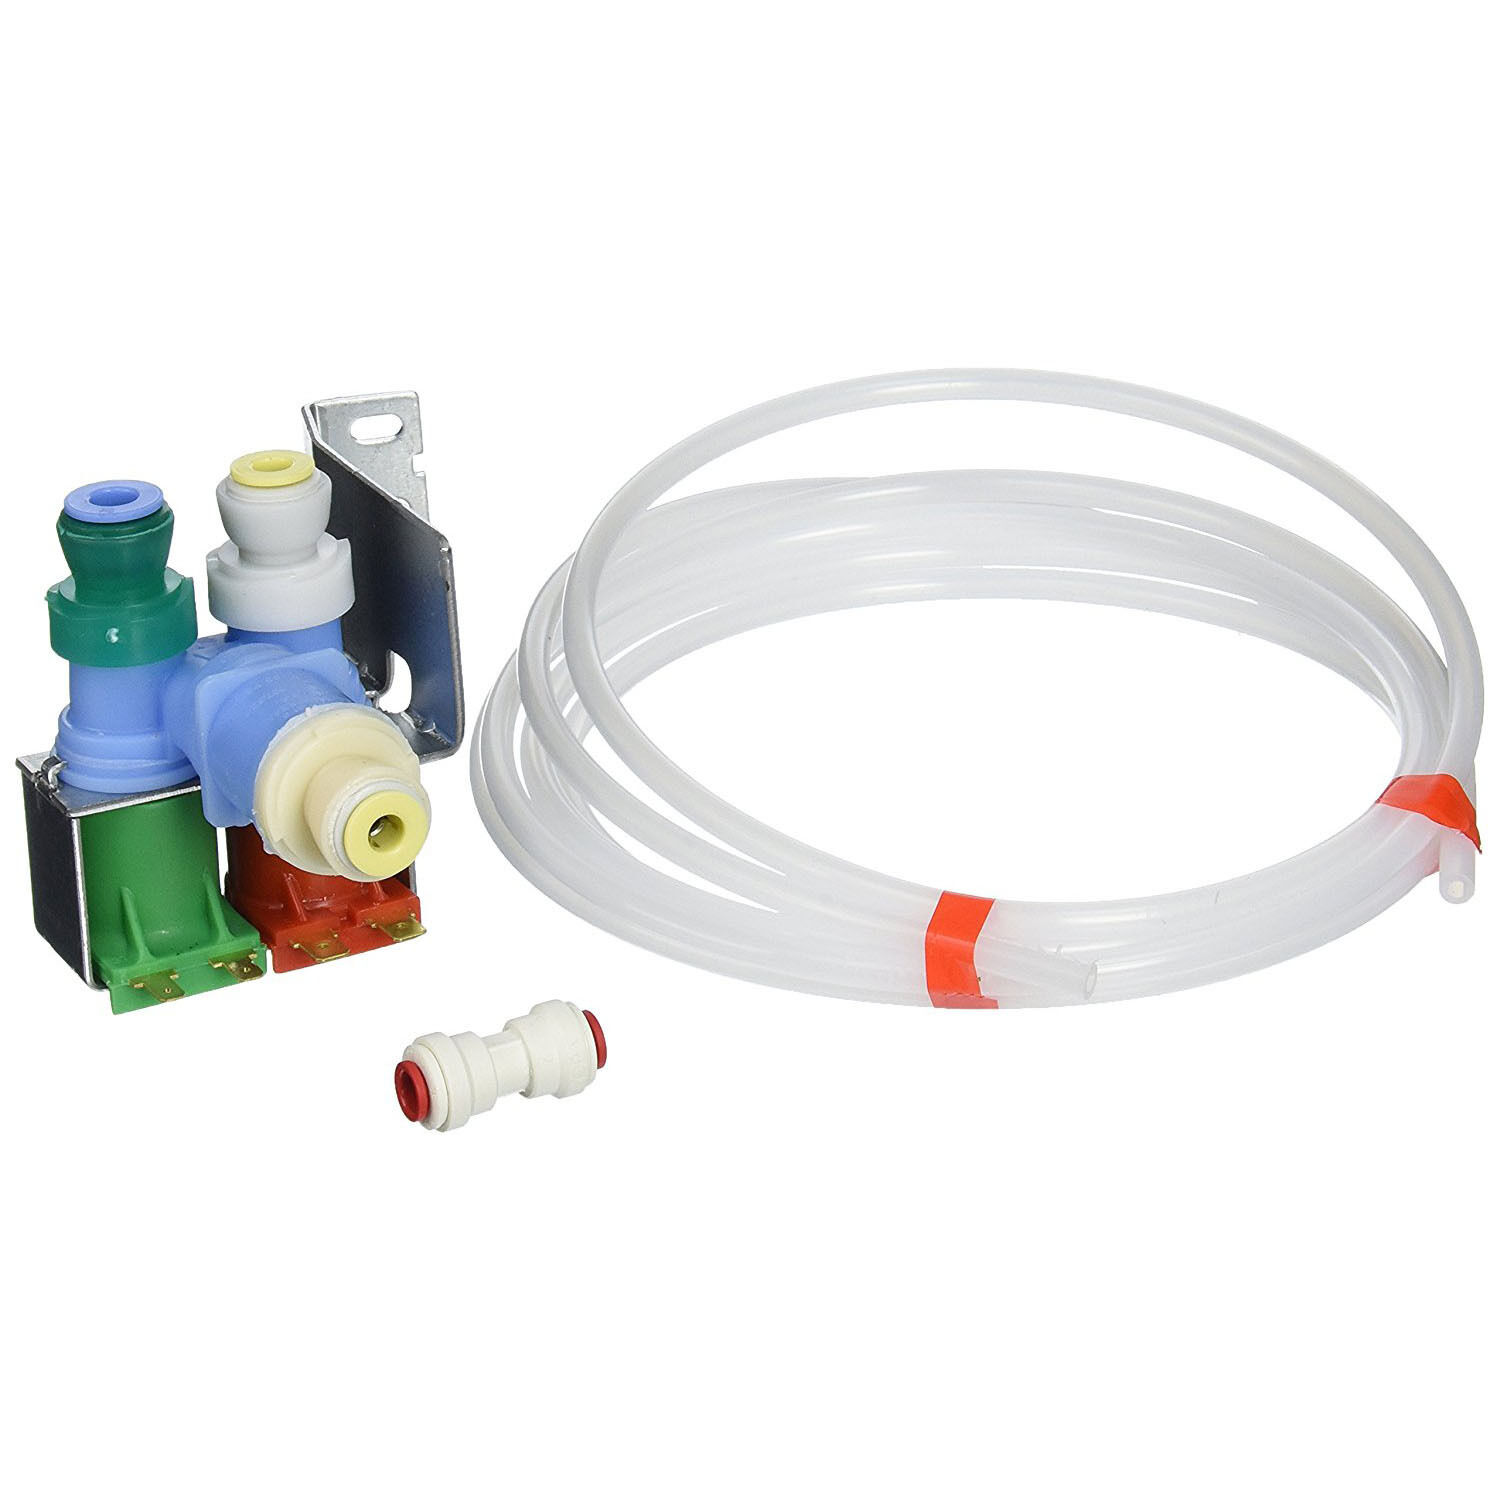 Refrigerator Water Inlet Valve Kit Dual Coil for Whirlpool K